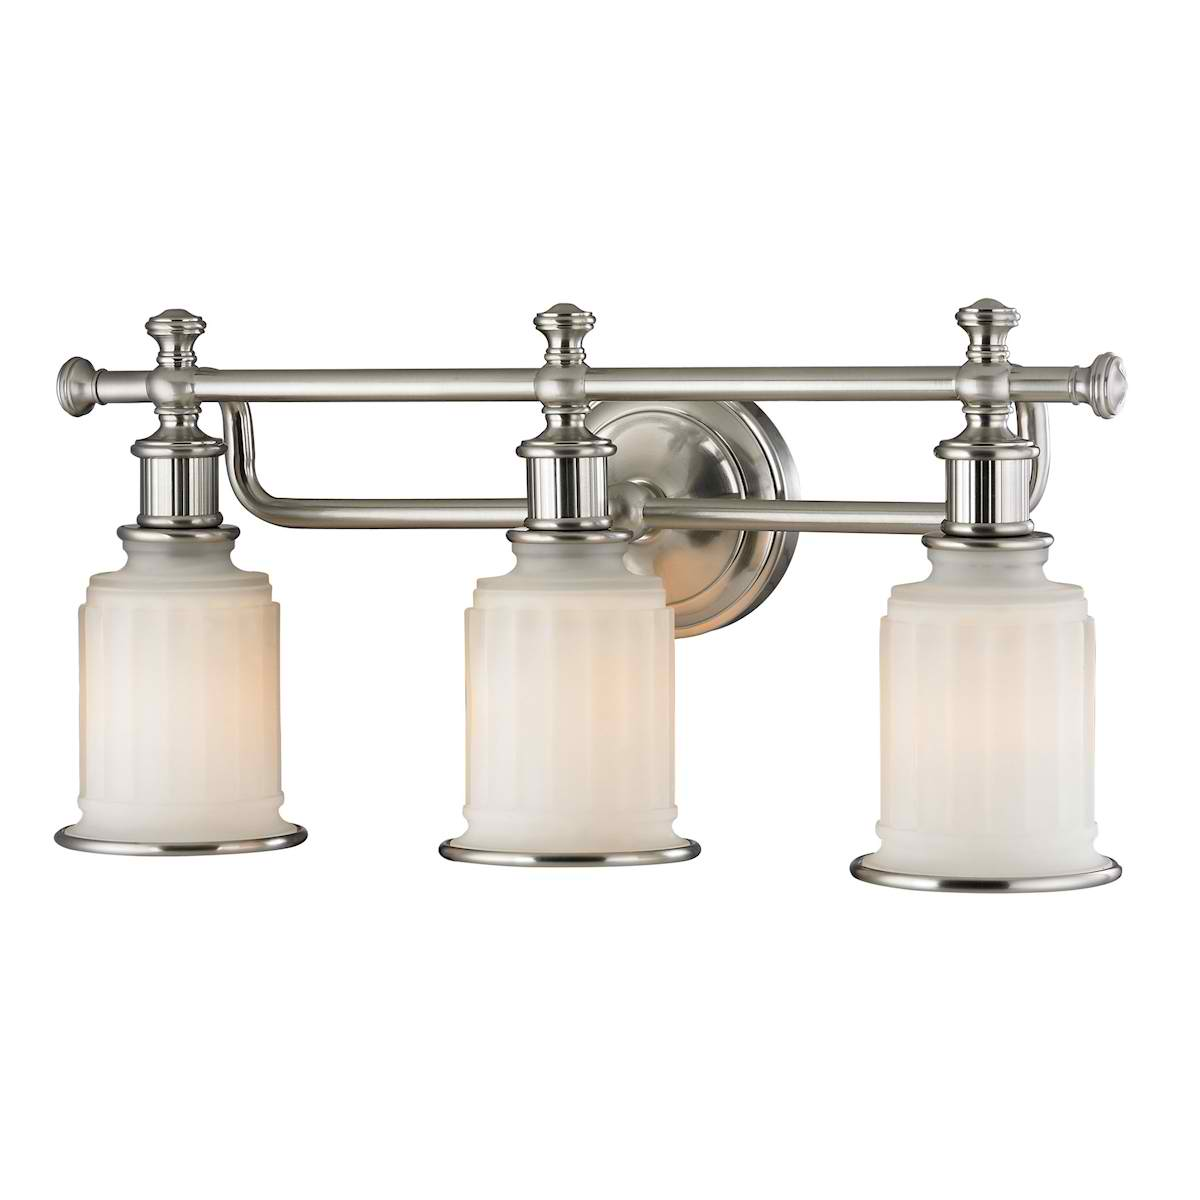 Acadia Collection 3 Light Bath in Brushed Nickel